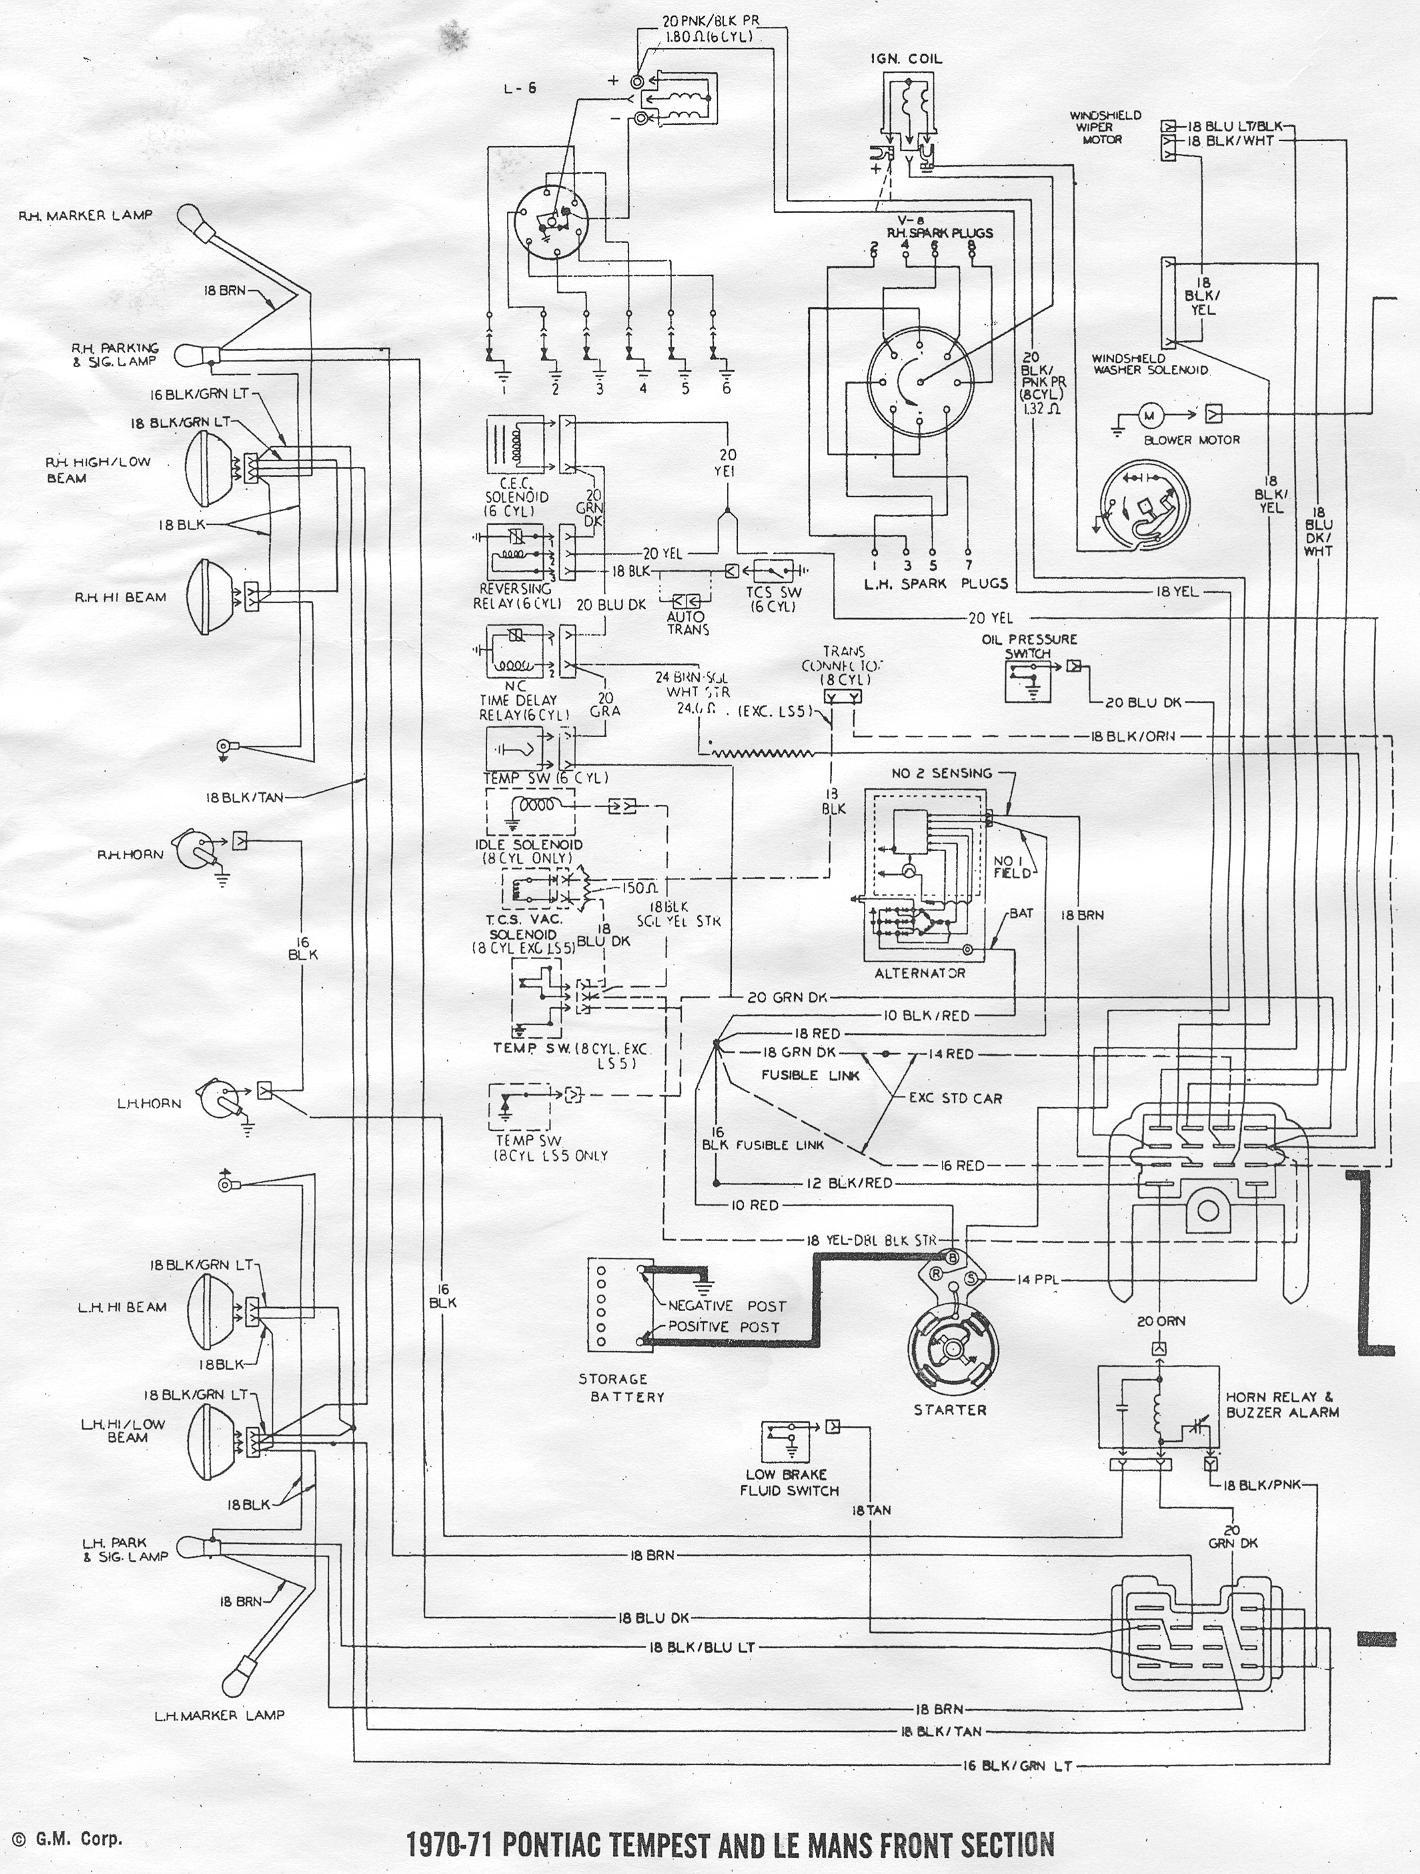 car wiring schematics 77 chevelle 1964 chevelle wiring harness 1964 image wiring diagram 1970 chevelle wiring harness wiring diagram on 1964